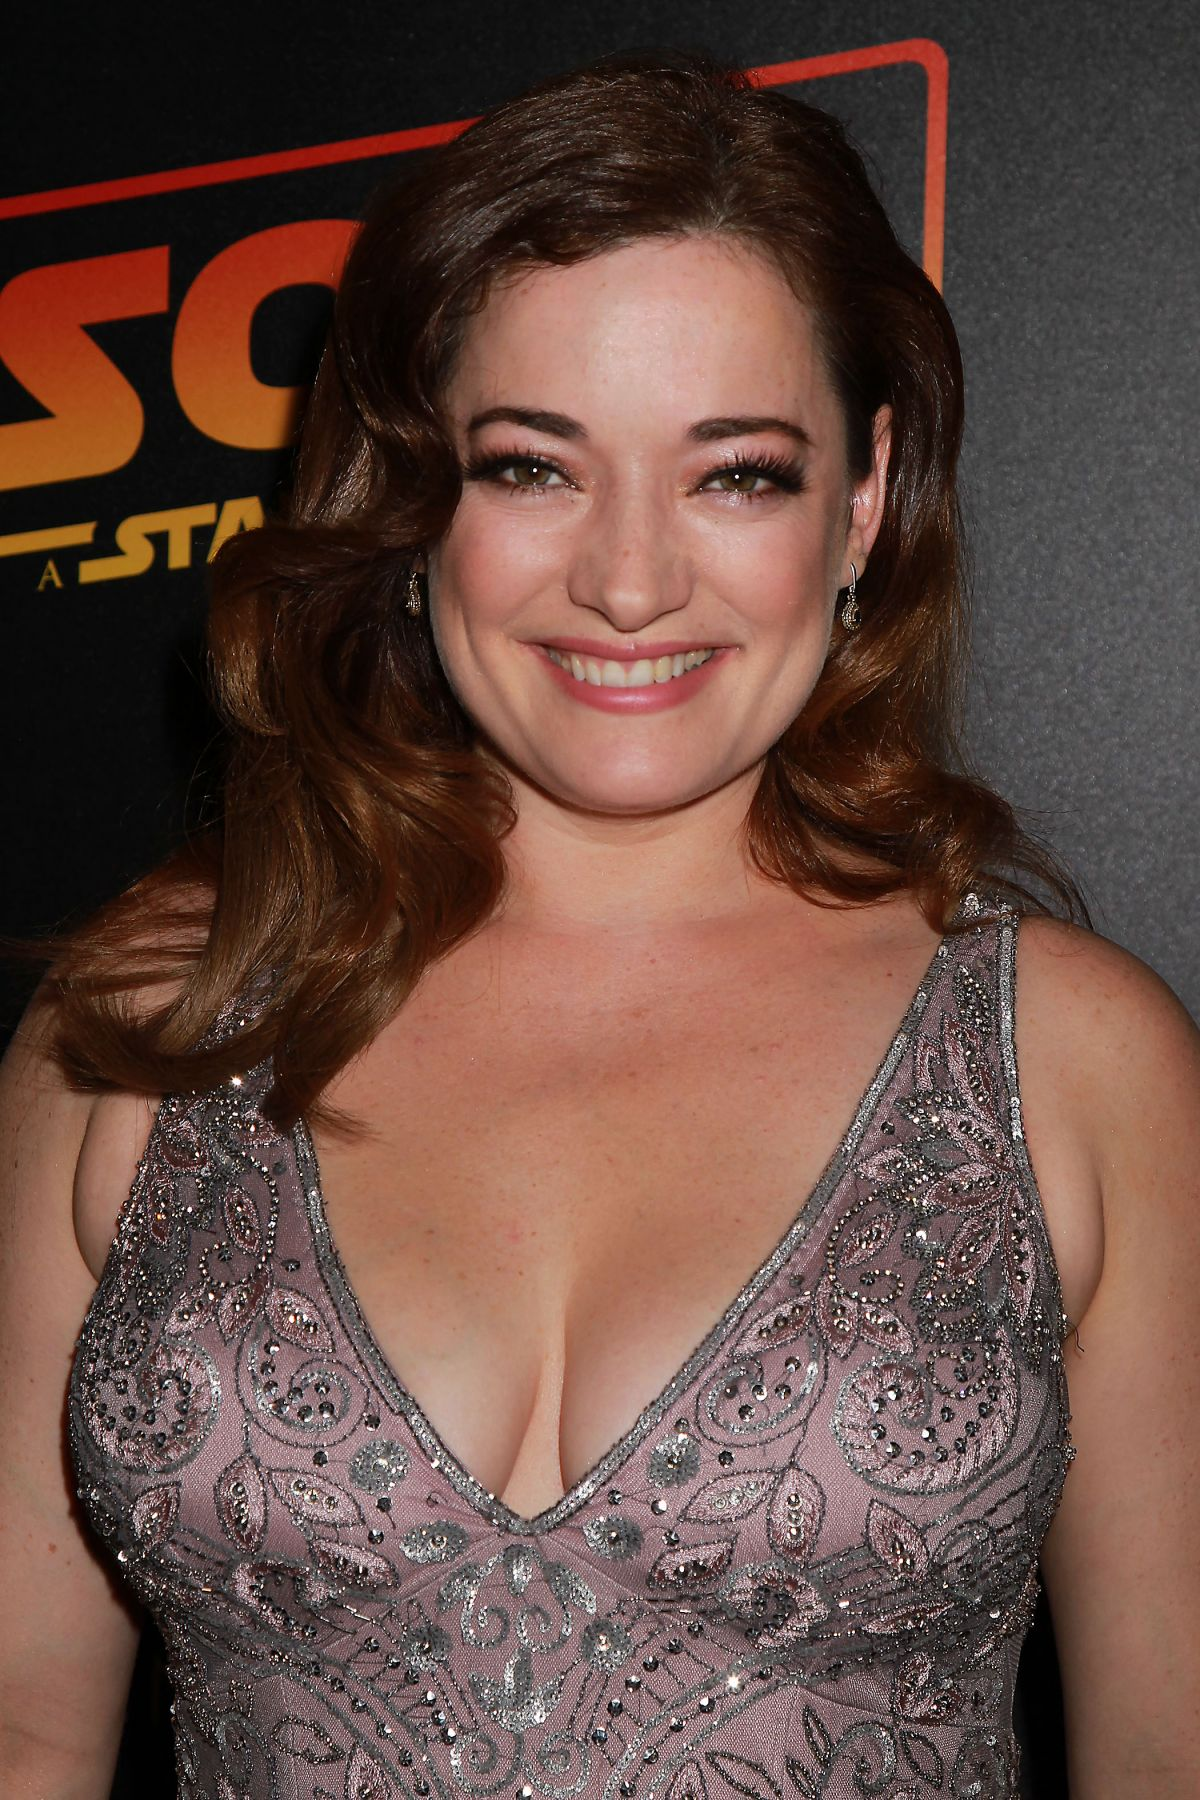 Laura Michelle Kelly nudes (85 photo), Topless, Bikini, Instagram, lingerie 2018